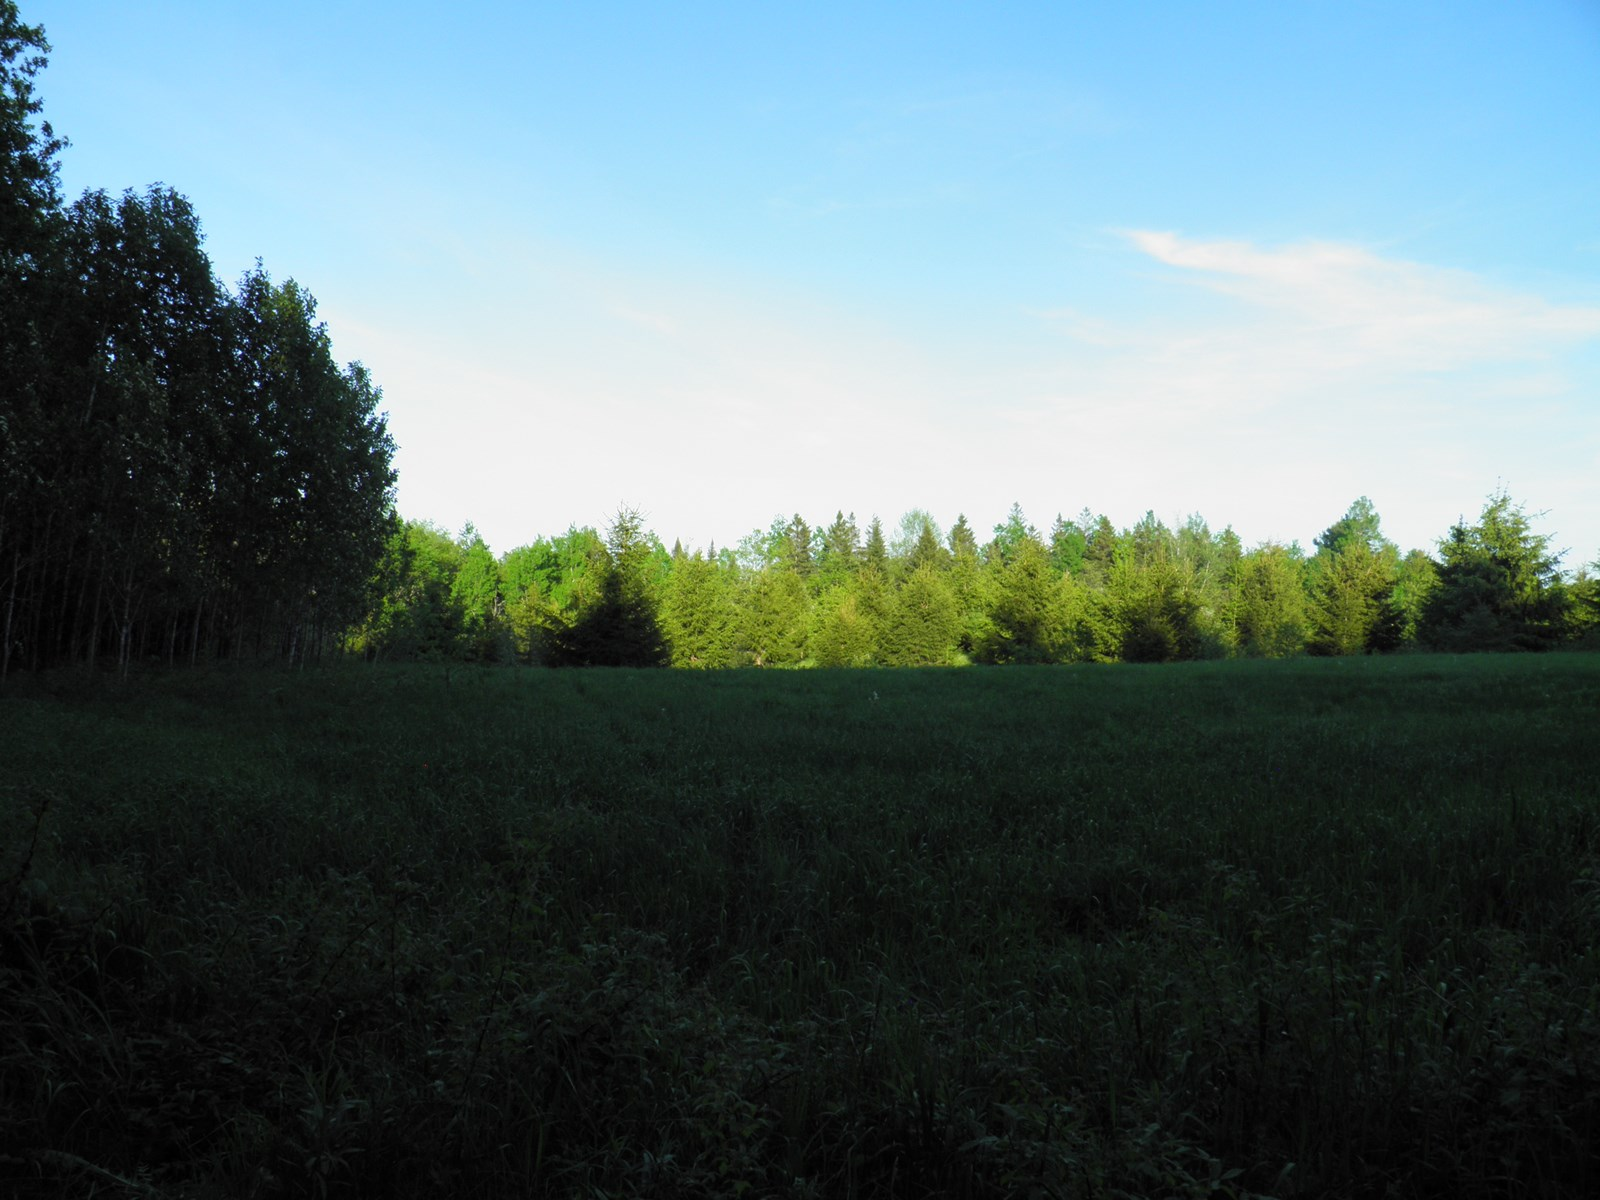 Farm Property For Sale in Maine